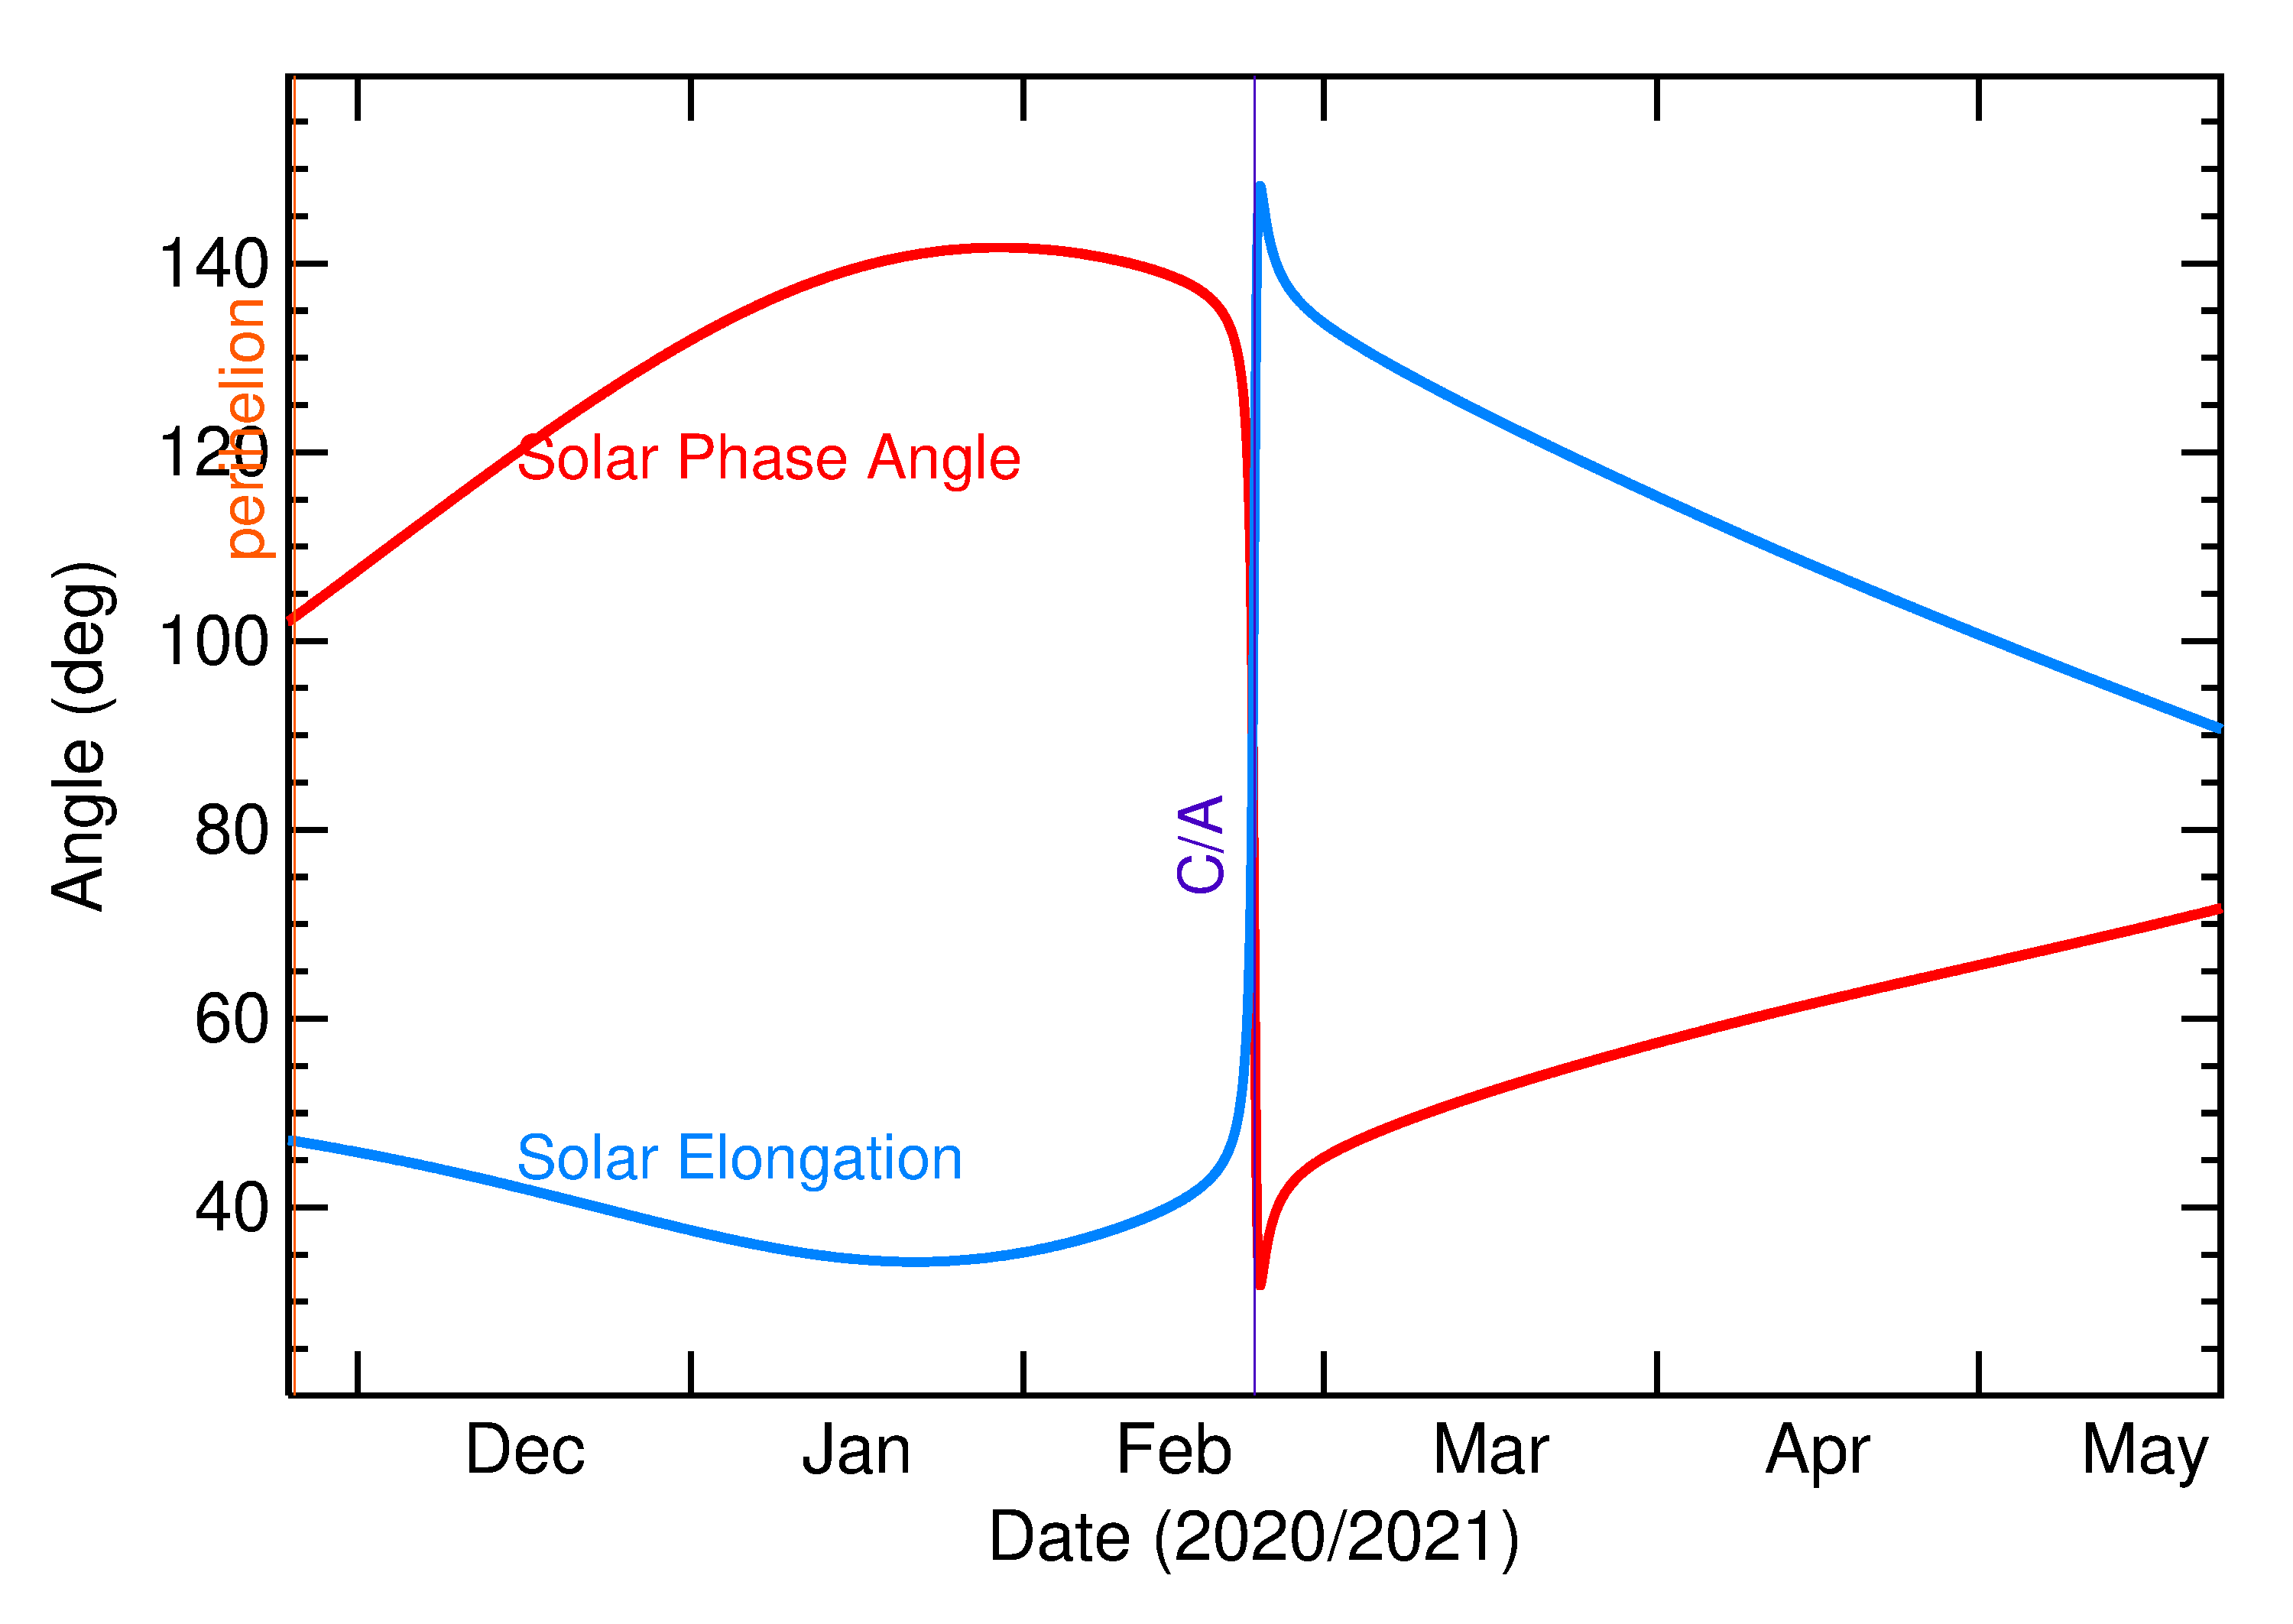 Solar Elongation and Solar Phase Angle of 2021 DA2 in the months around closest approach